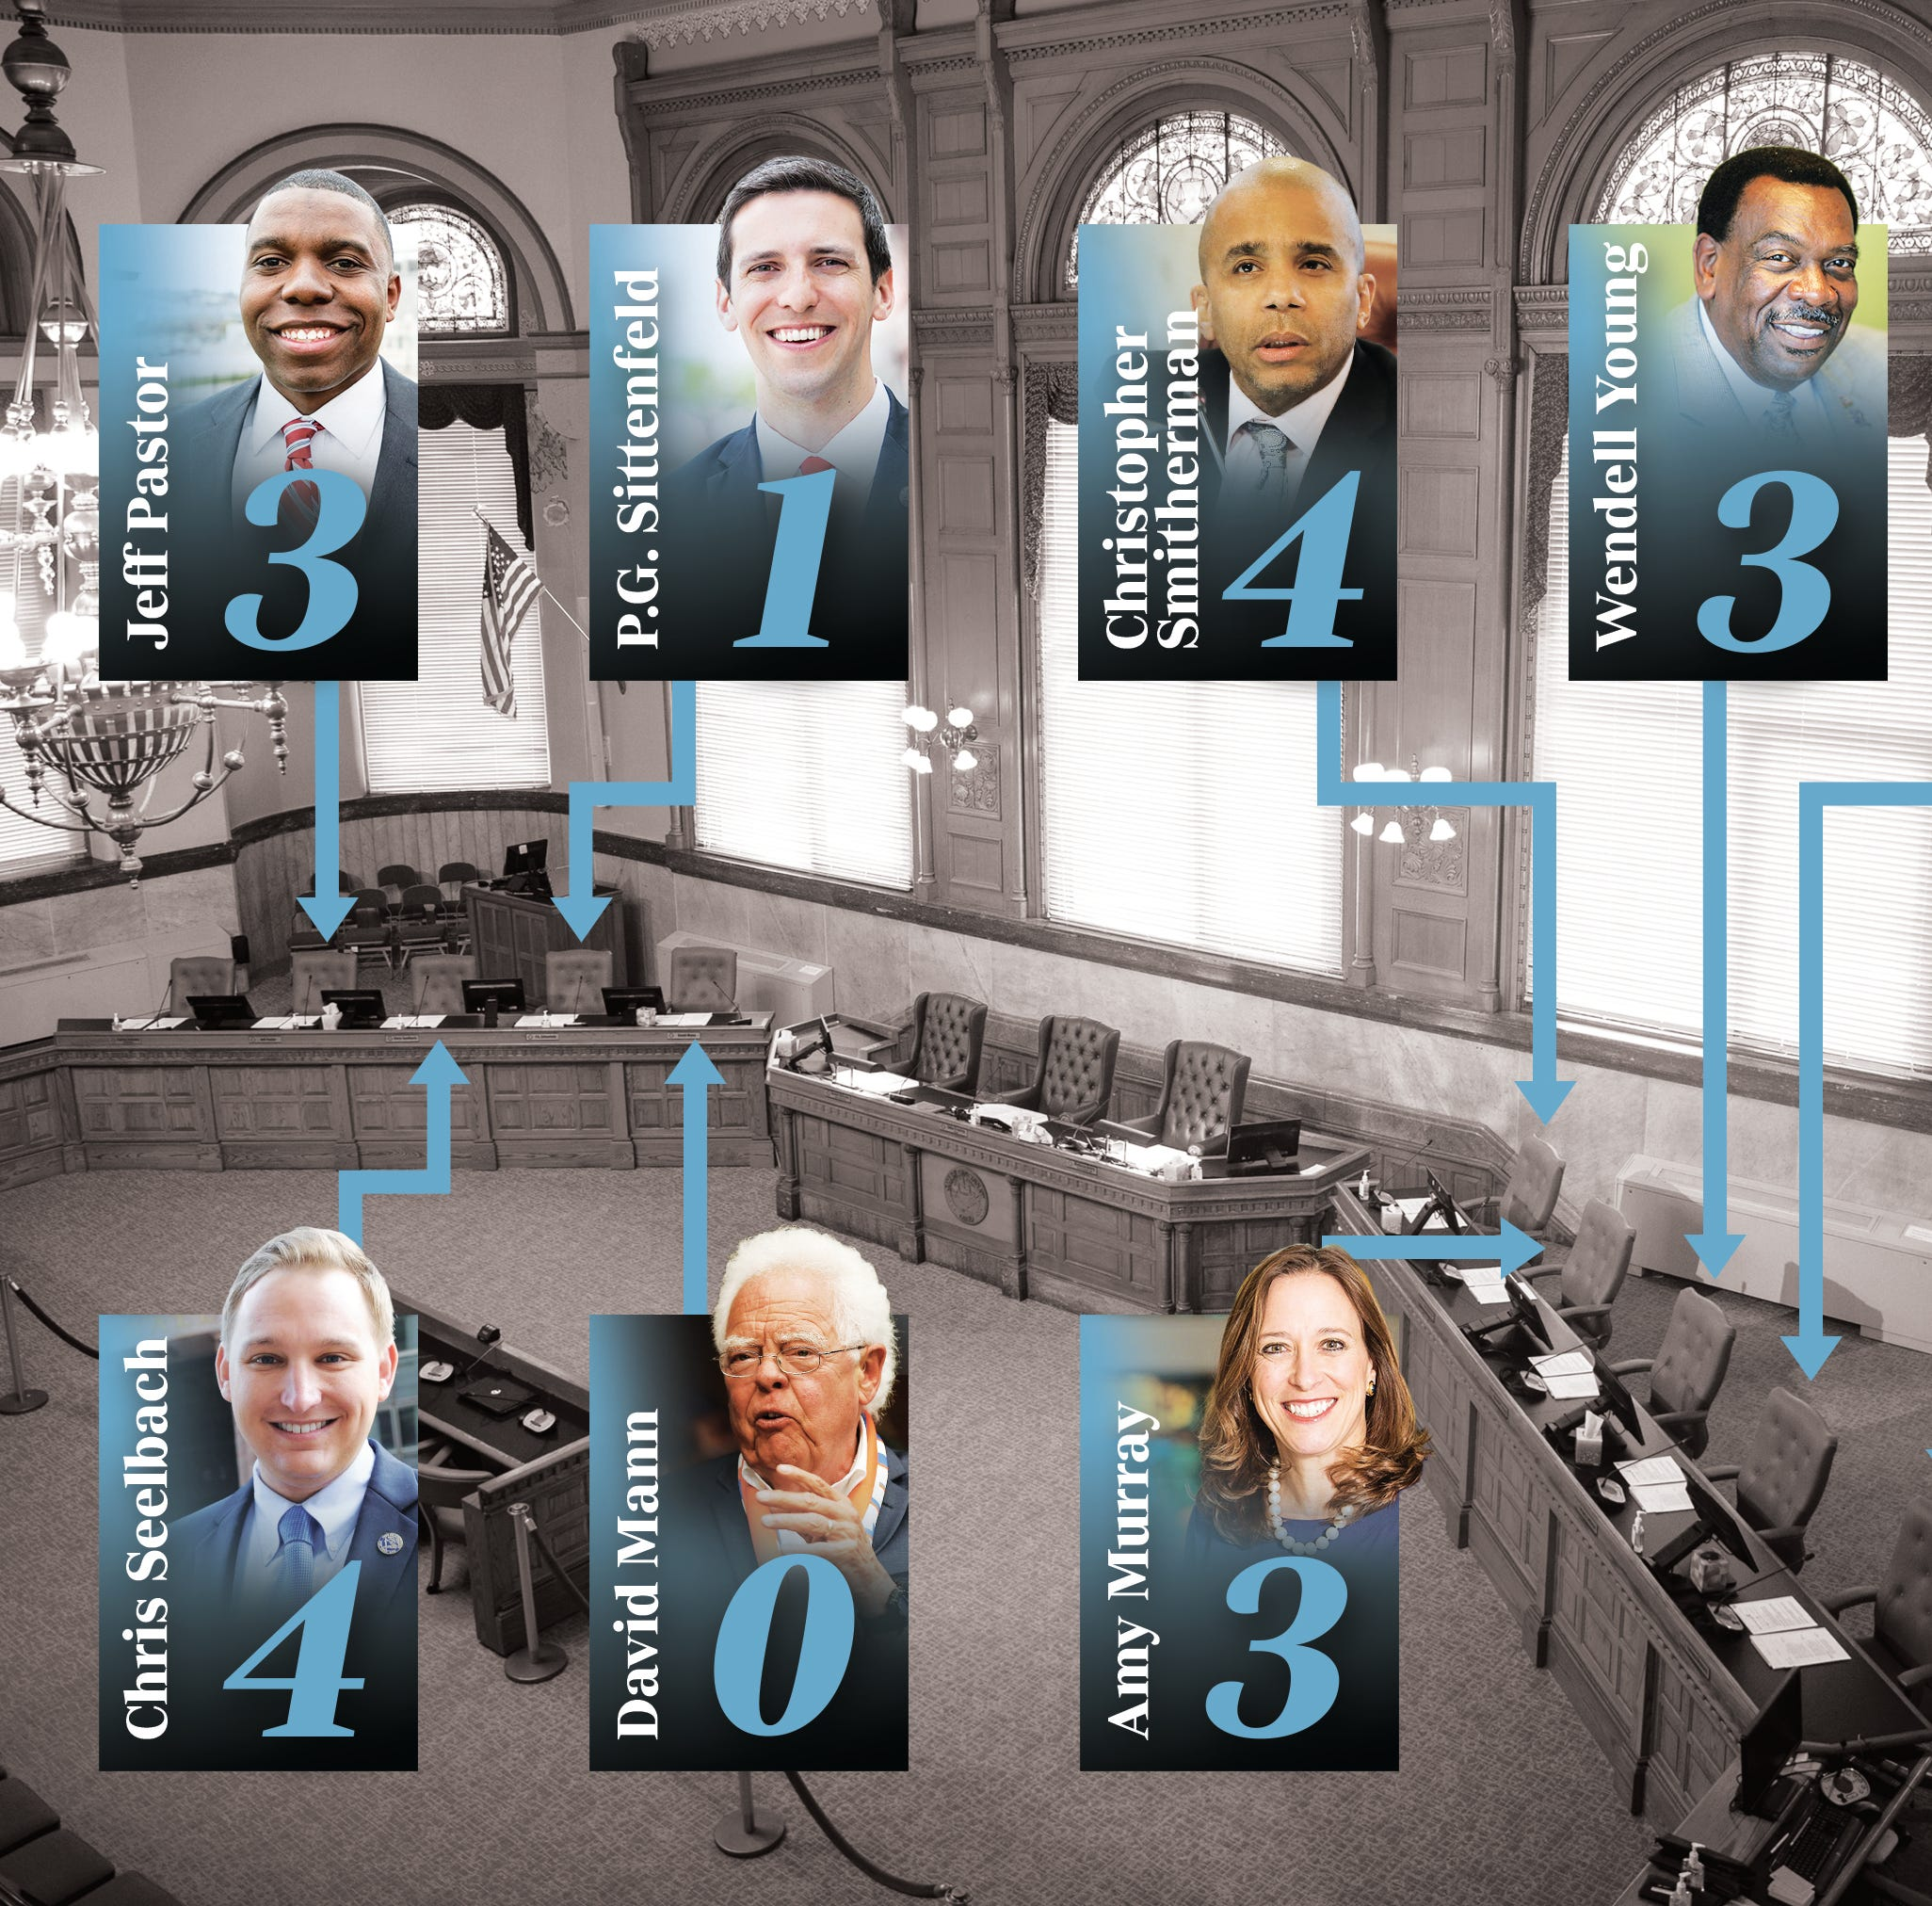 For Cincinnati City Council members, how many meetings is too many to miss?